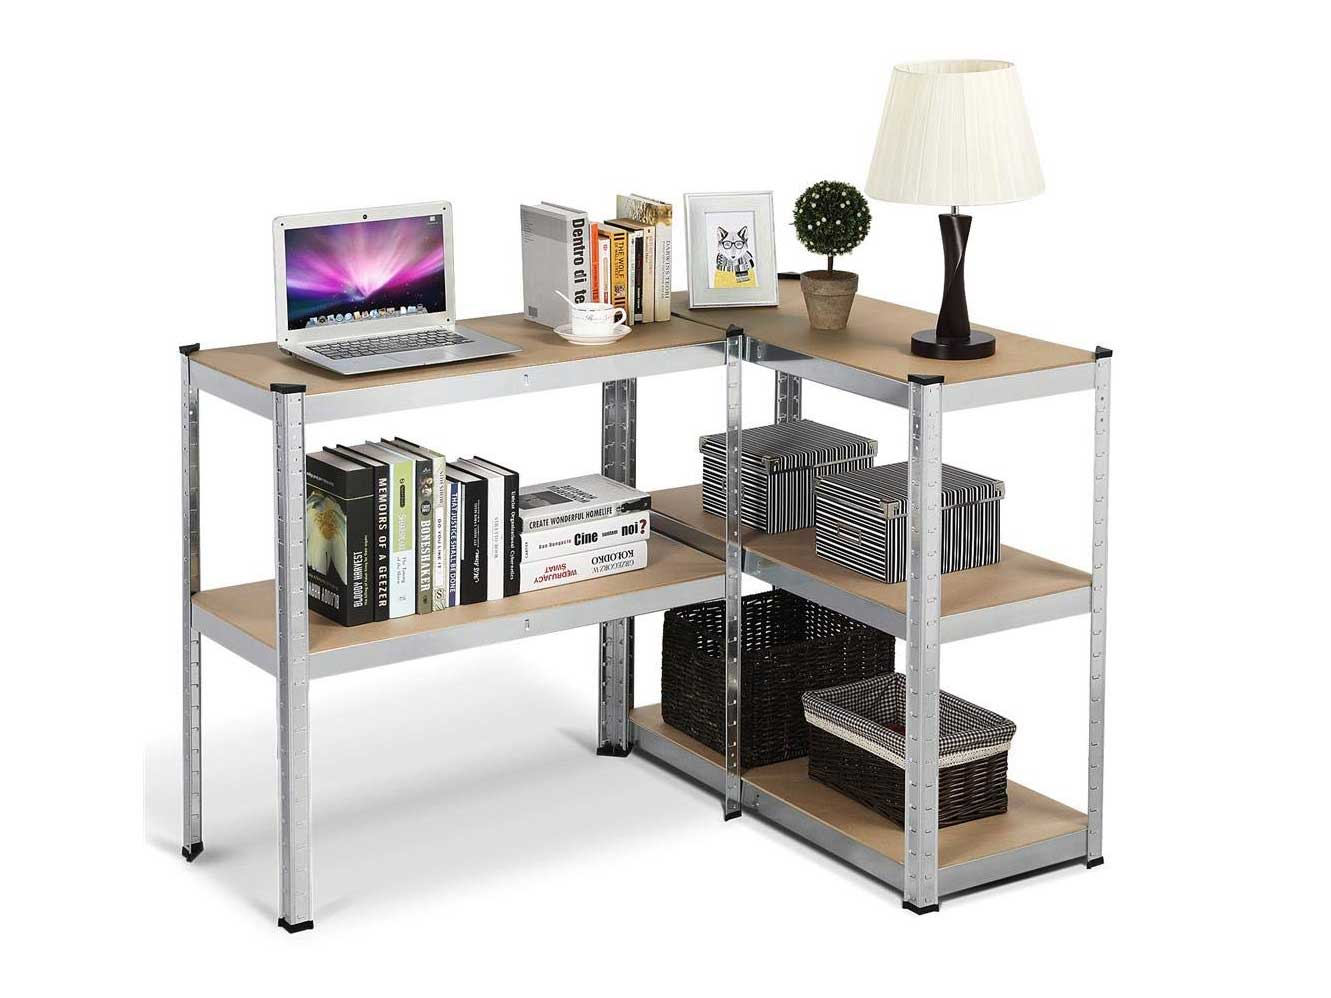 Shelving unit with books, baskets, plant, laptop, and lamp.